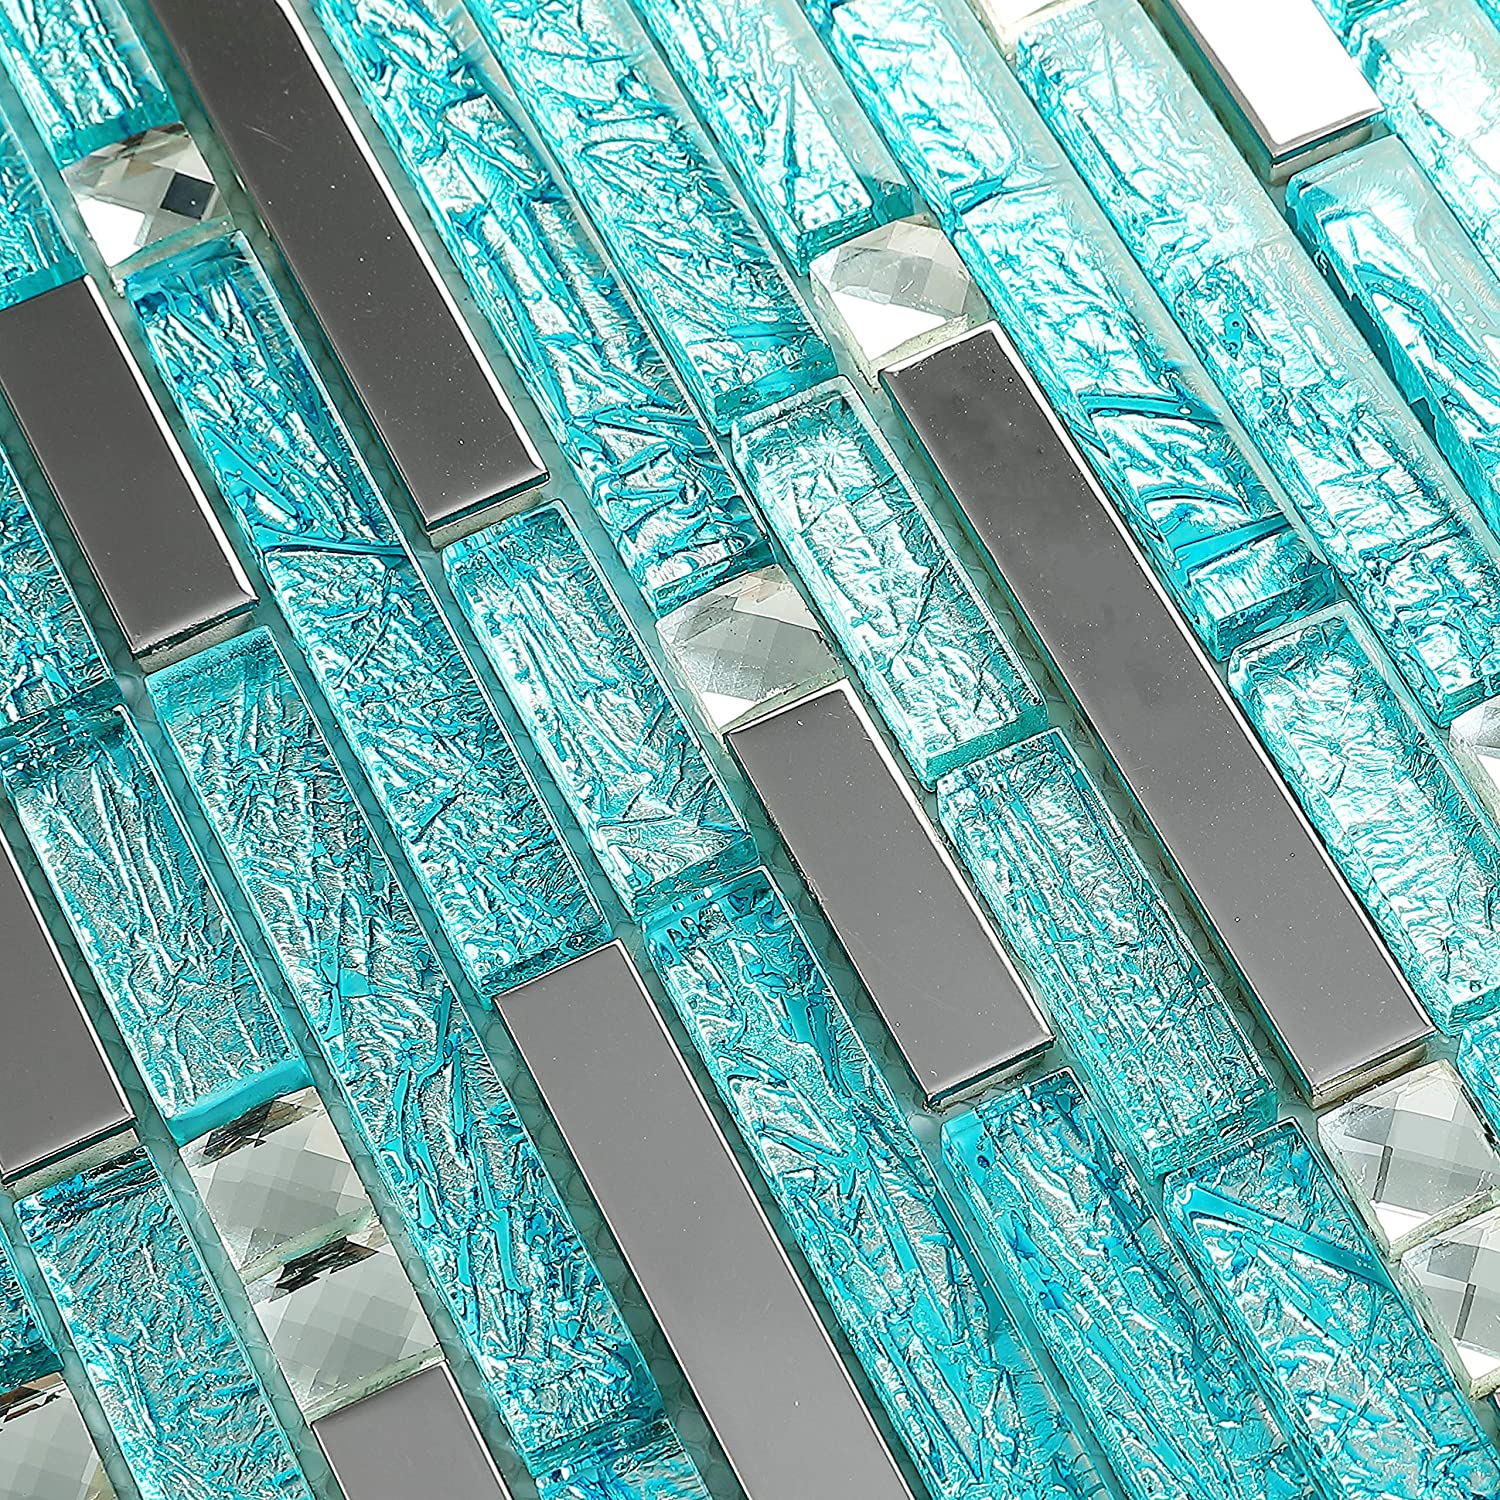 Hominter 5 Sheets Silver Stainless Steel Tile Cyan Blue Crystal Glass and Metal Wall Tiles for Kitchen Backsplash Bathroom and Shower H20